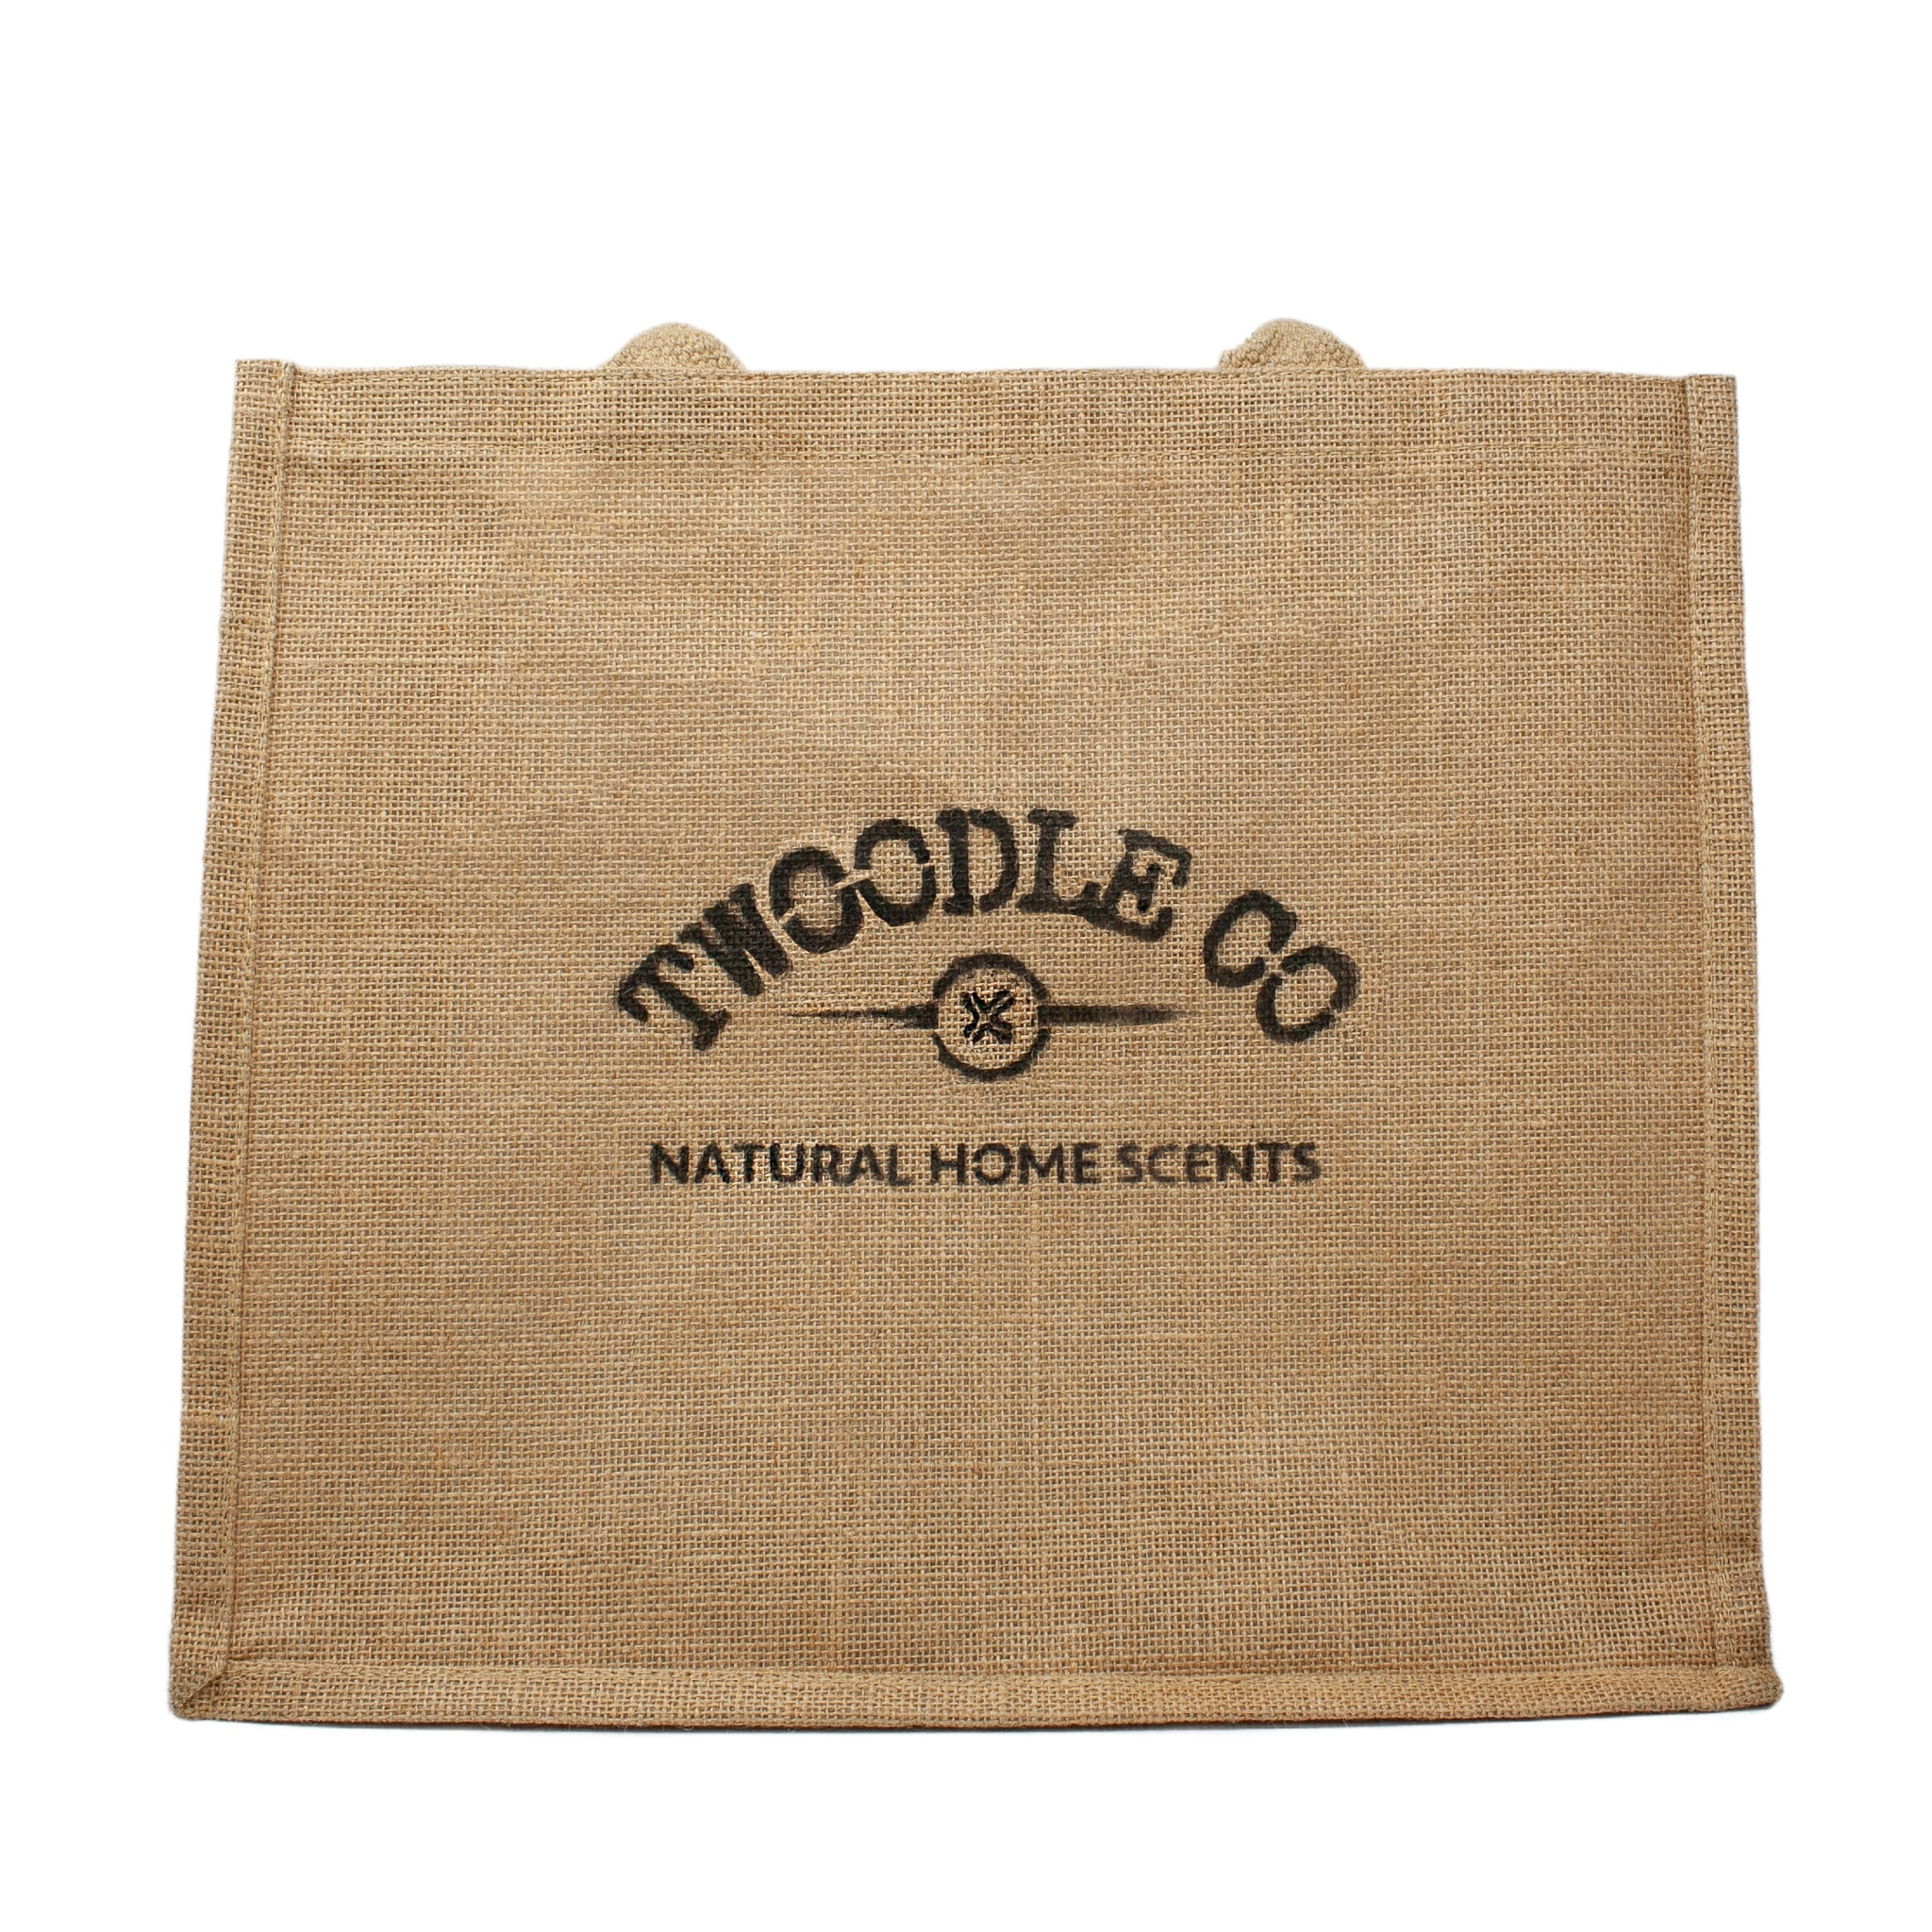 Eco friendly tote bag by Twoodle Co Natural Home Scents 1